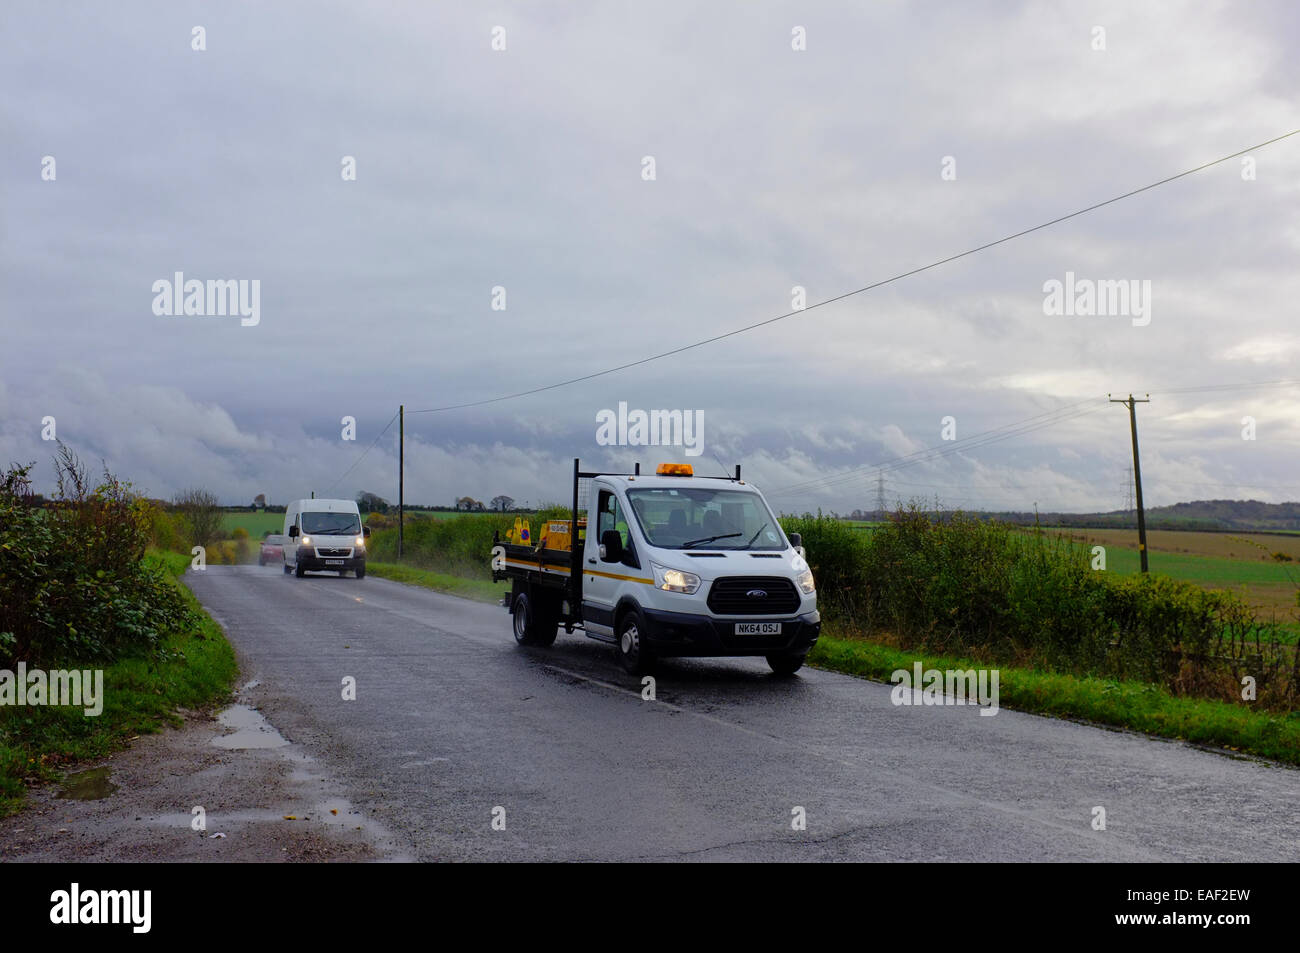 tradesmen vehicles on a wet country lane in Bedfordshire - Stock Image